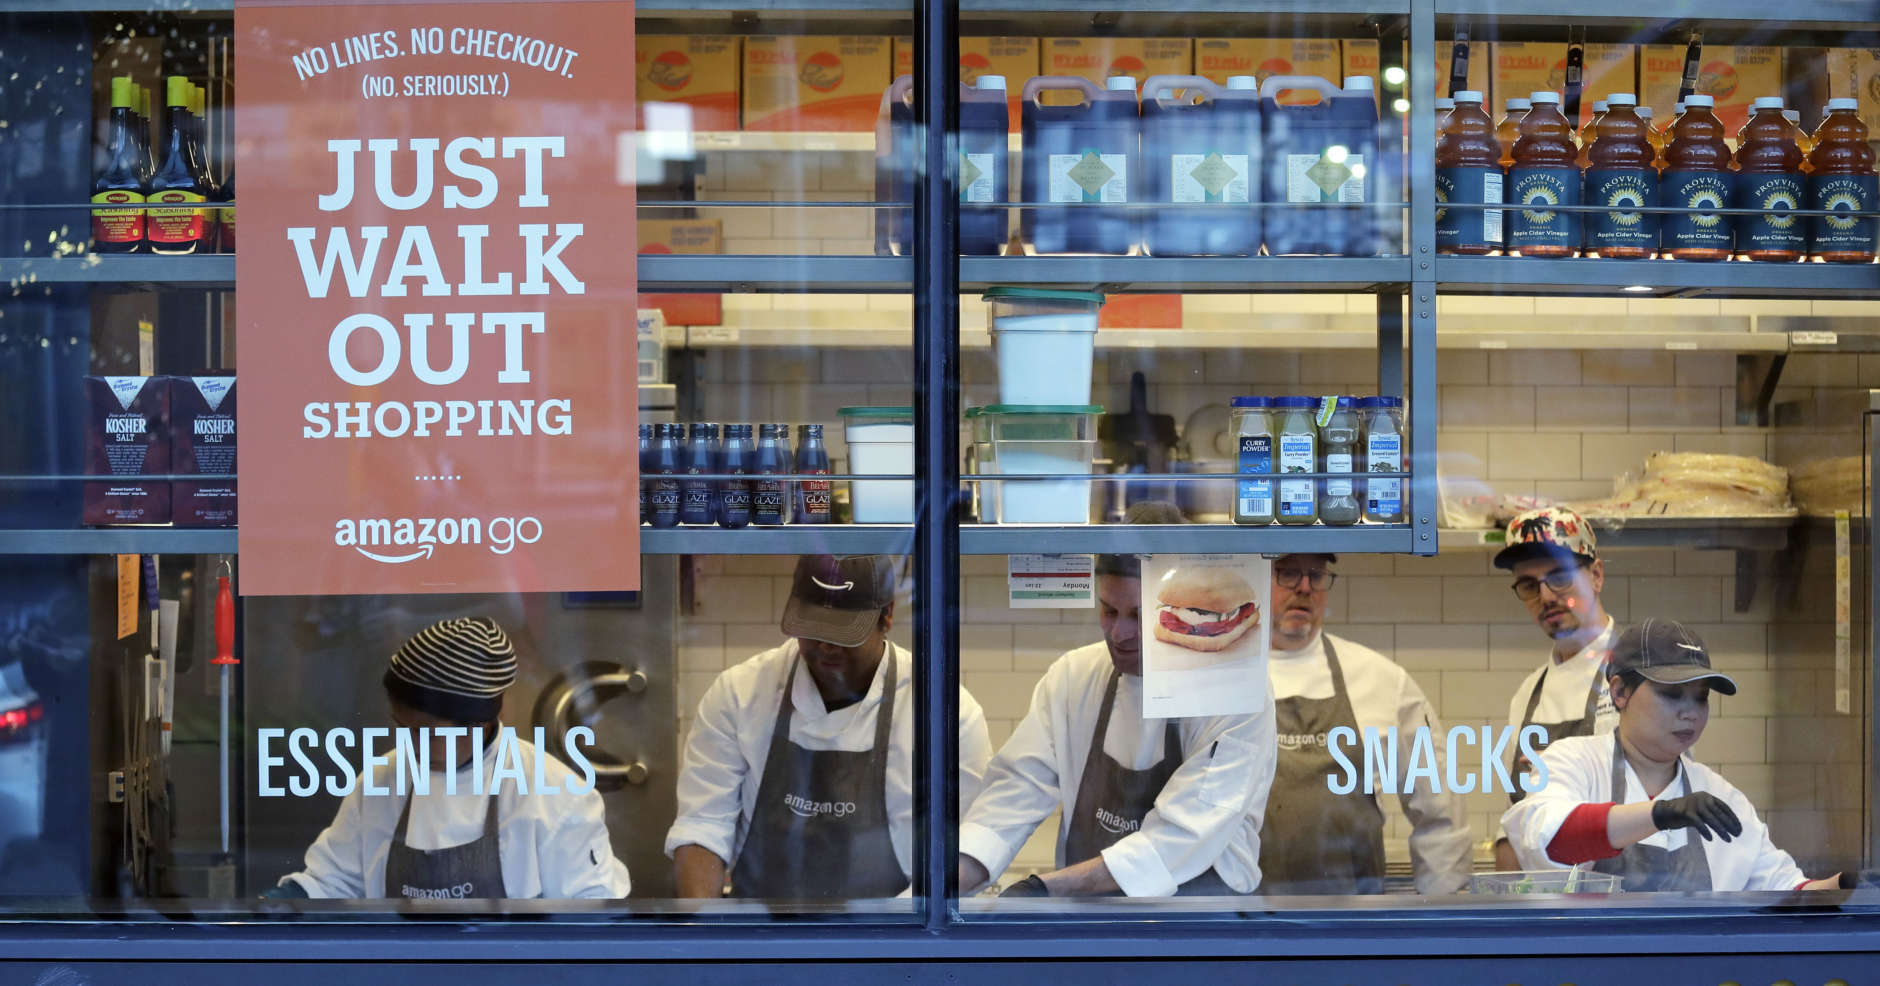 Workers as seen from a sidewalk window as they assemble sandwiches in an Amazon Go store Monday, Jan. 22, 2018, in Seattle. More than a year after it introduced the concept, Amazon opened its artificial intelligence-powered Amazon Go store in downtown Seattle on Monday. The store on the bottom floor of the company's Seattle headquarters allows shoppers to scan their smartphone with the Amazon Go app at a turnstile, pick out the items they want and leave. (AP Photo/Elaine Thompson)